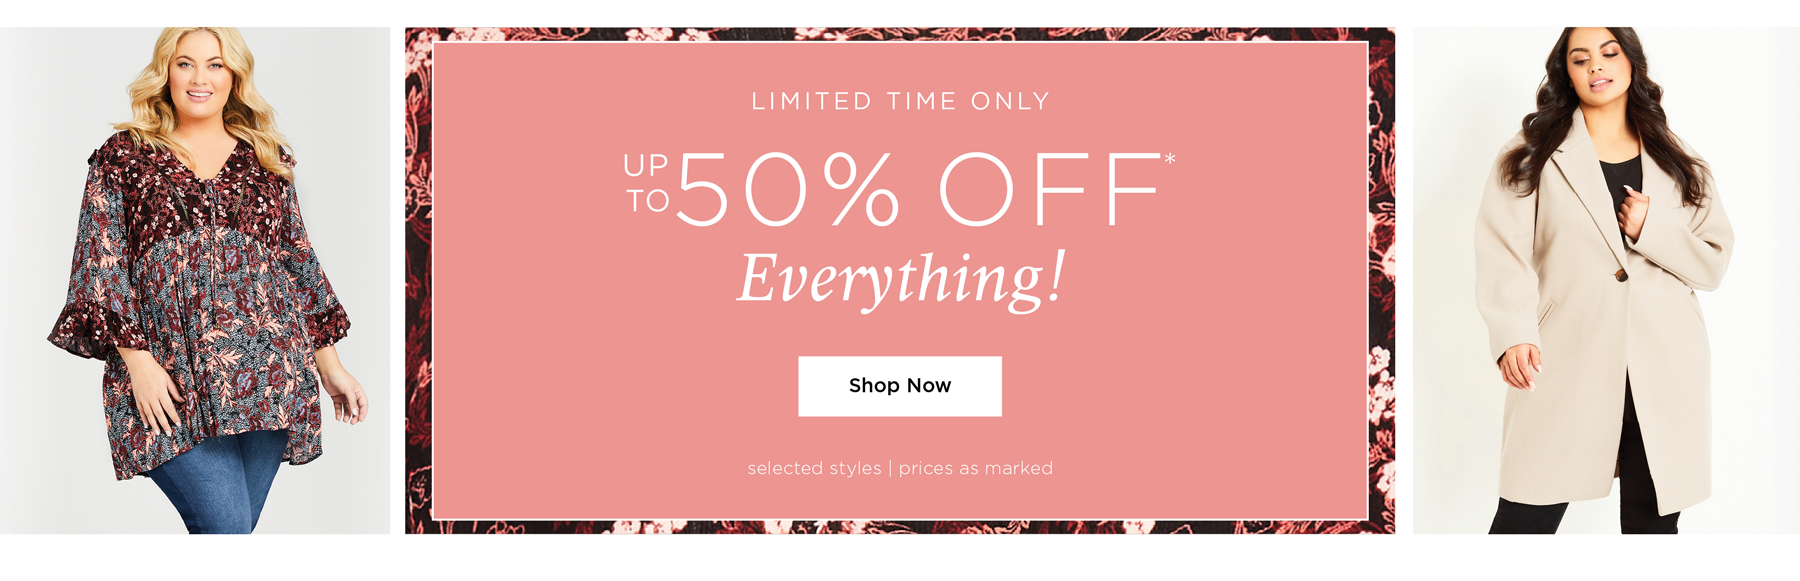 Up to 50% Off* Everything - Shop Now